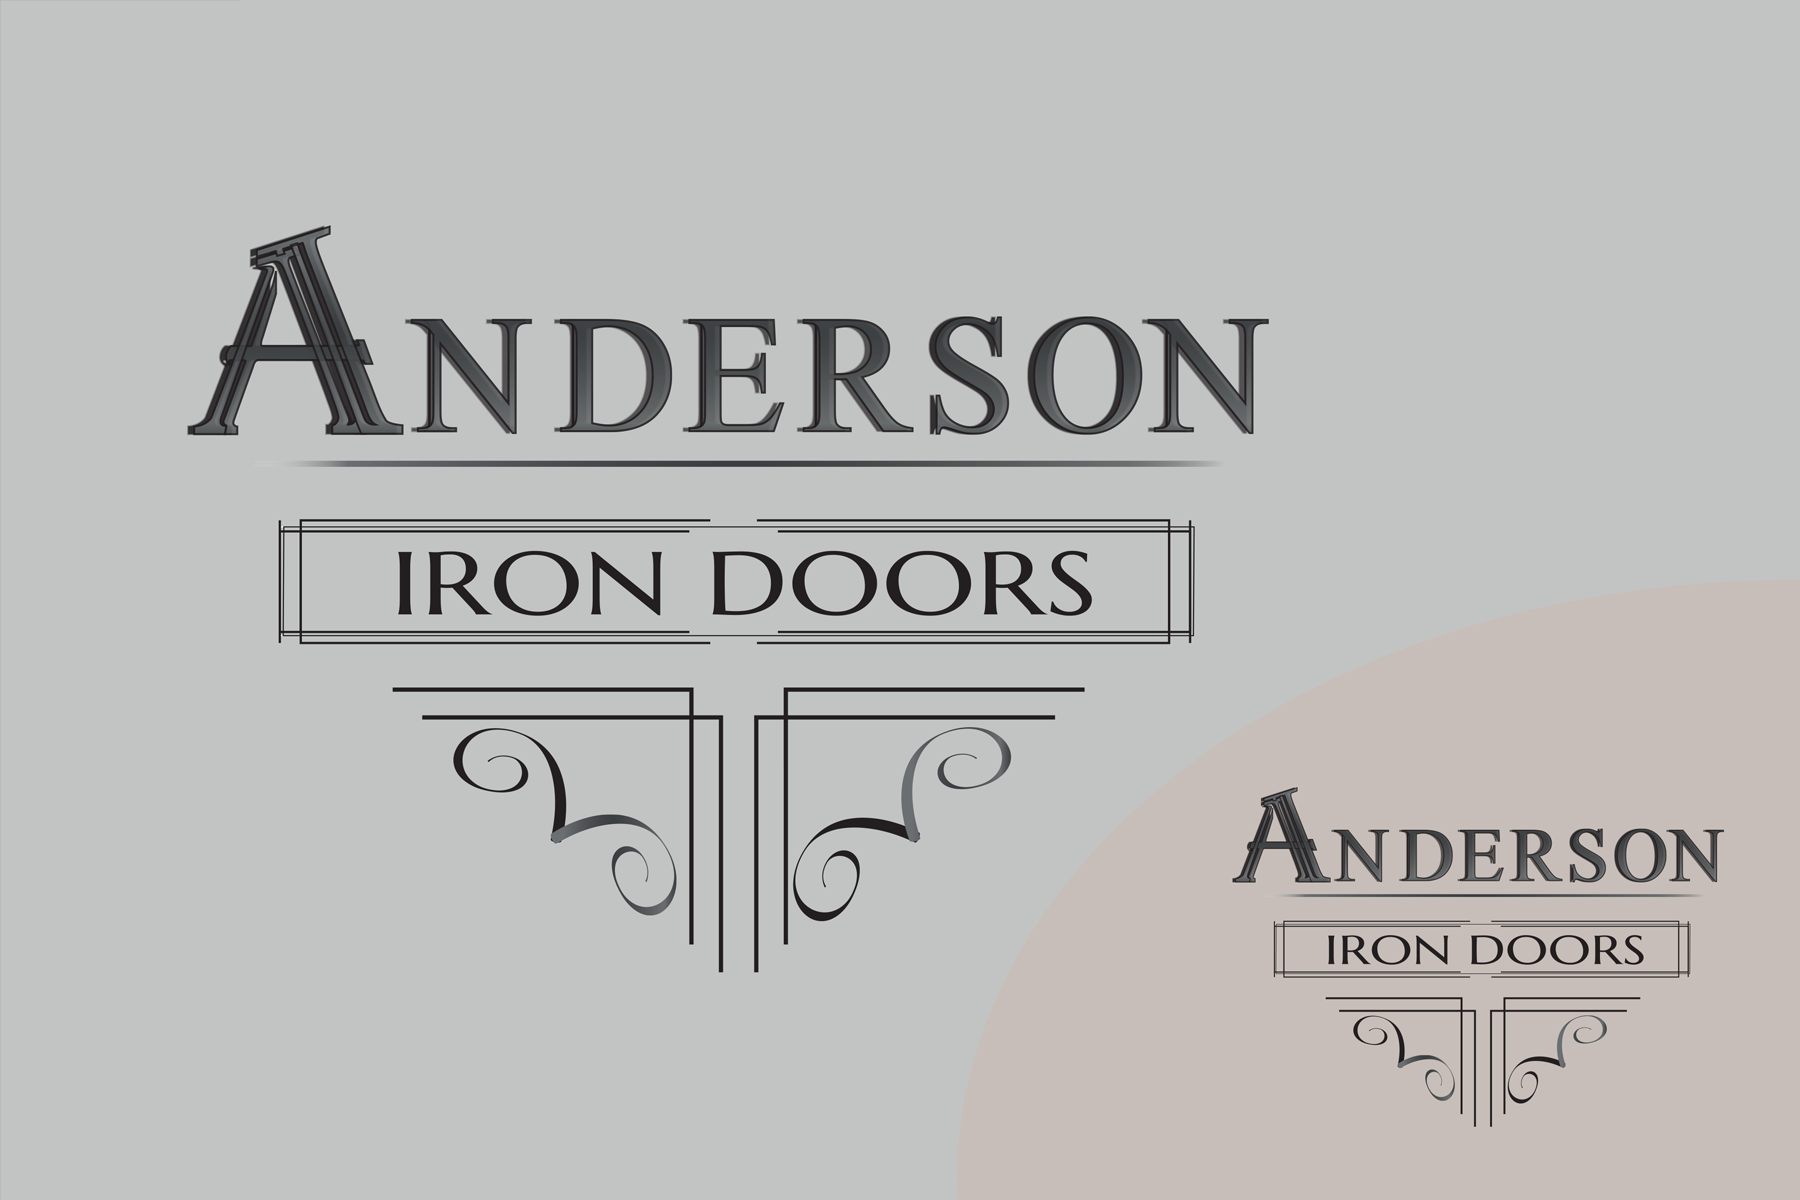 Logo Design by Rozsa Matyas - Entry No. 43 in the Logo Design Contest Artistic Logo Design for Anderson Iron Doors.